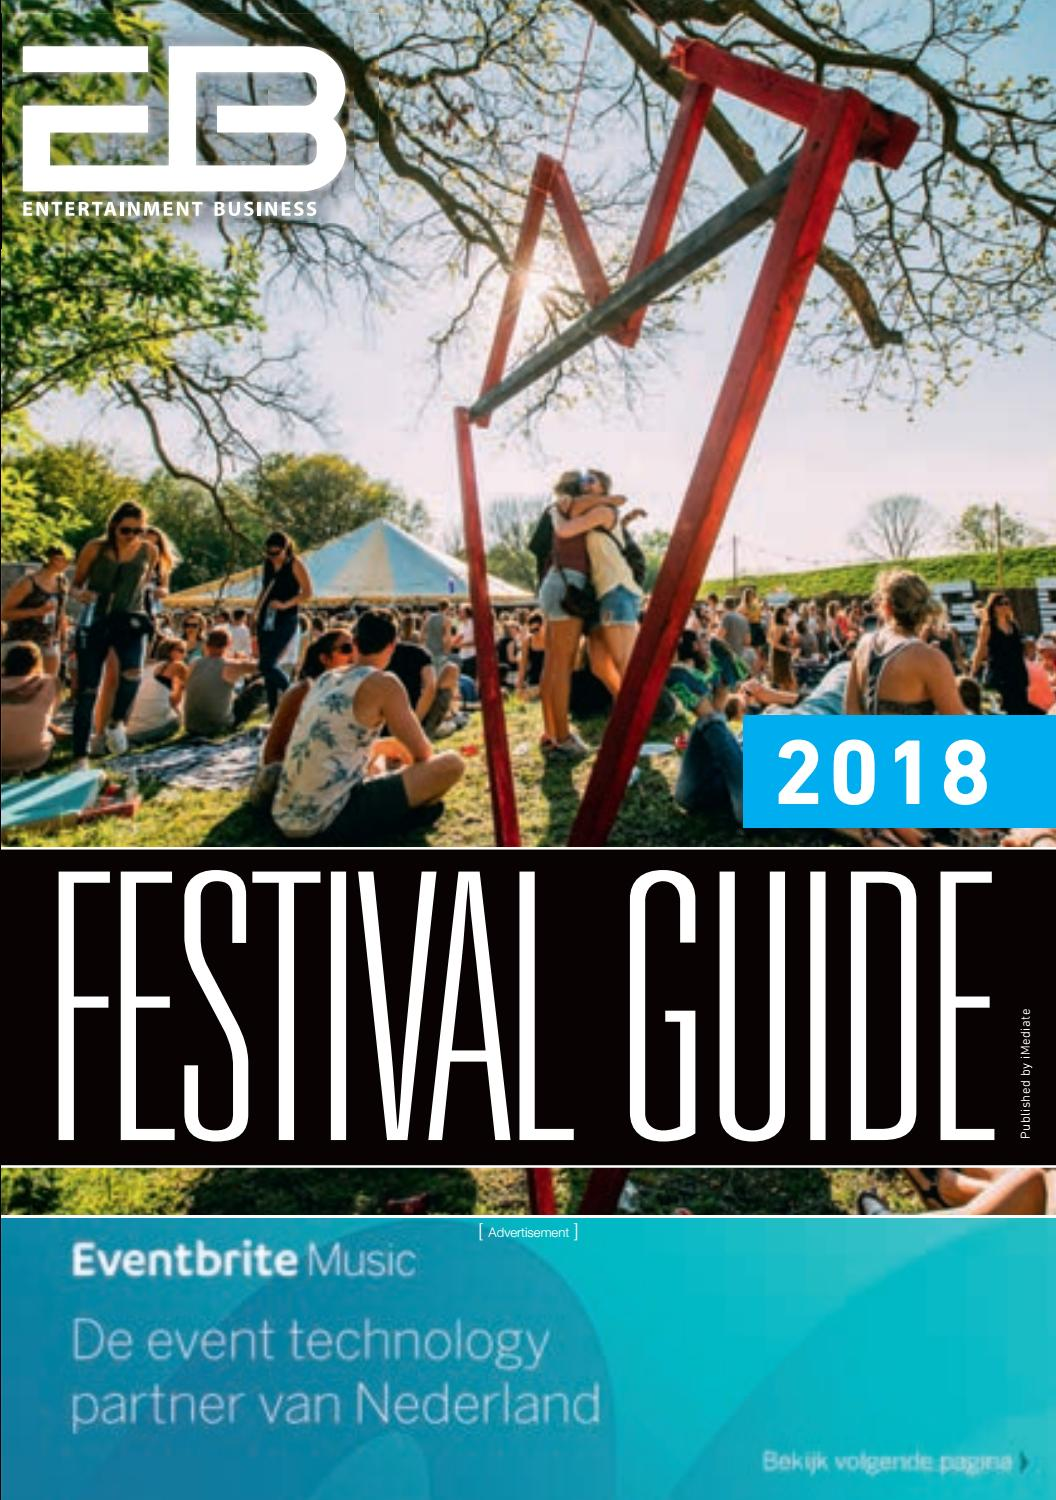 Vintage Tv Meubel Andersen.Eb Festival Guide 2018 By Imediate Issuu